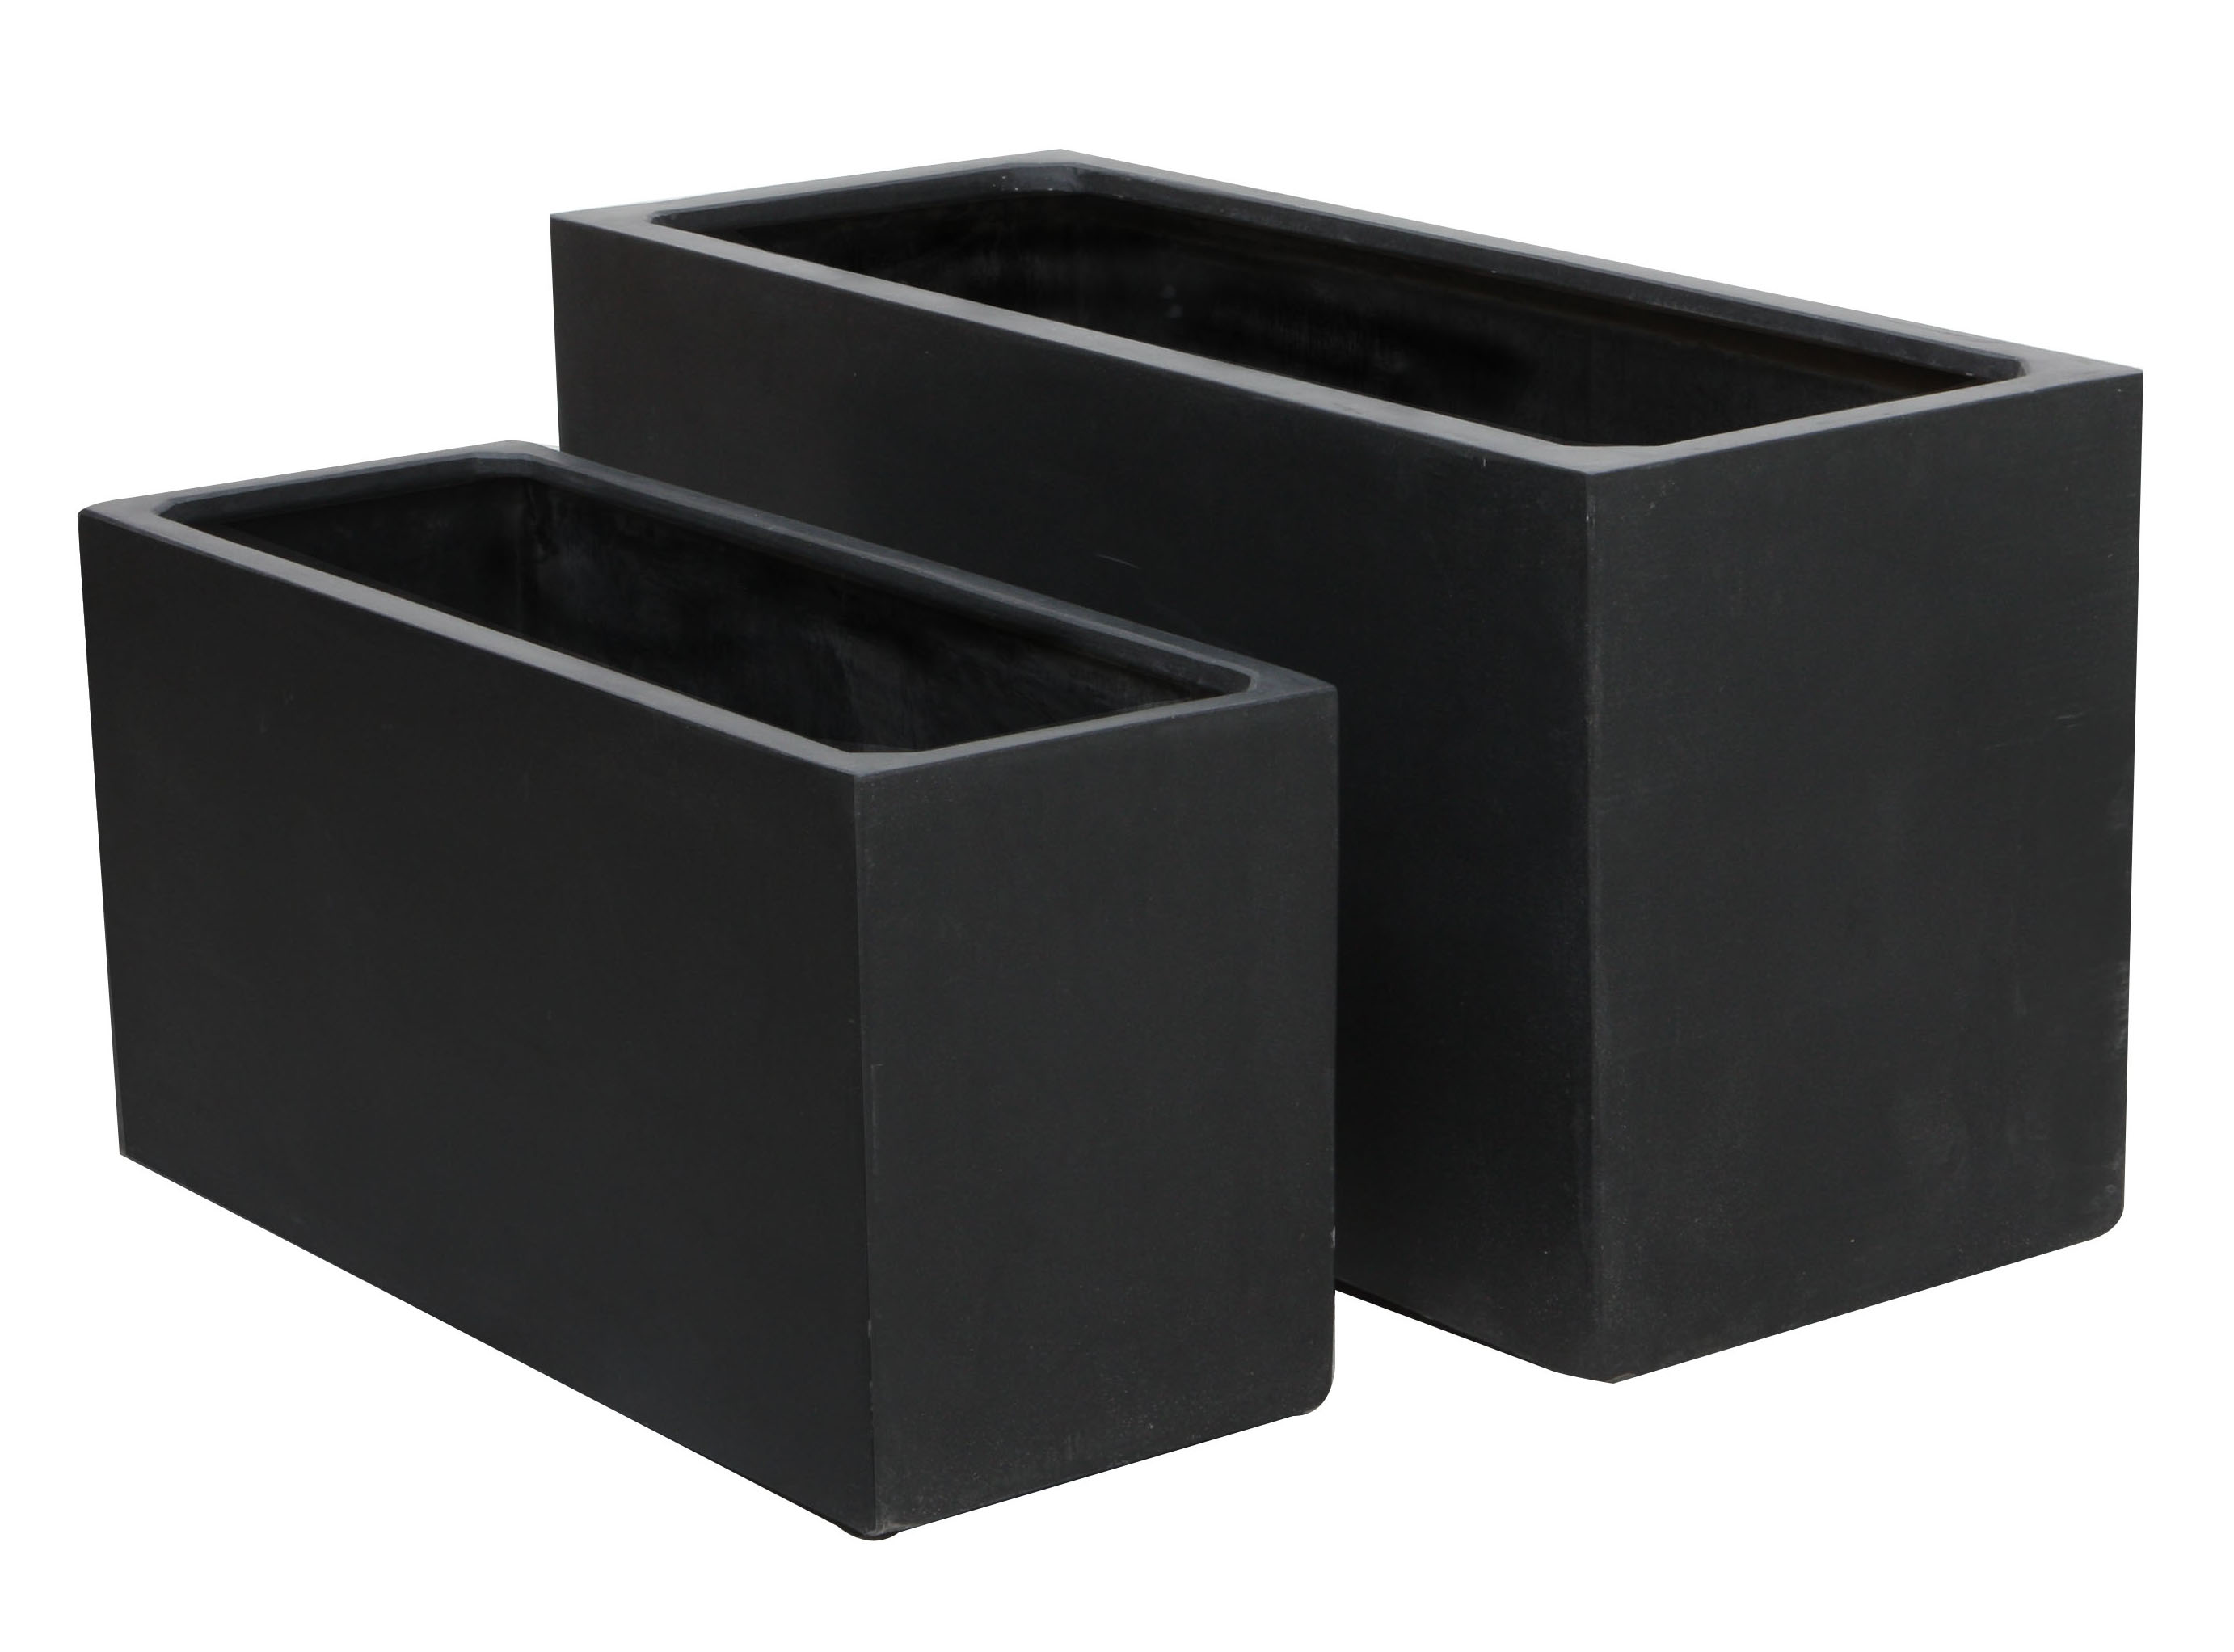 hoher blumenkasten in schwarz aus polystone gro. Black Bedroom Furniture Sets. Home Design Ideas